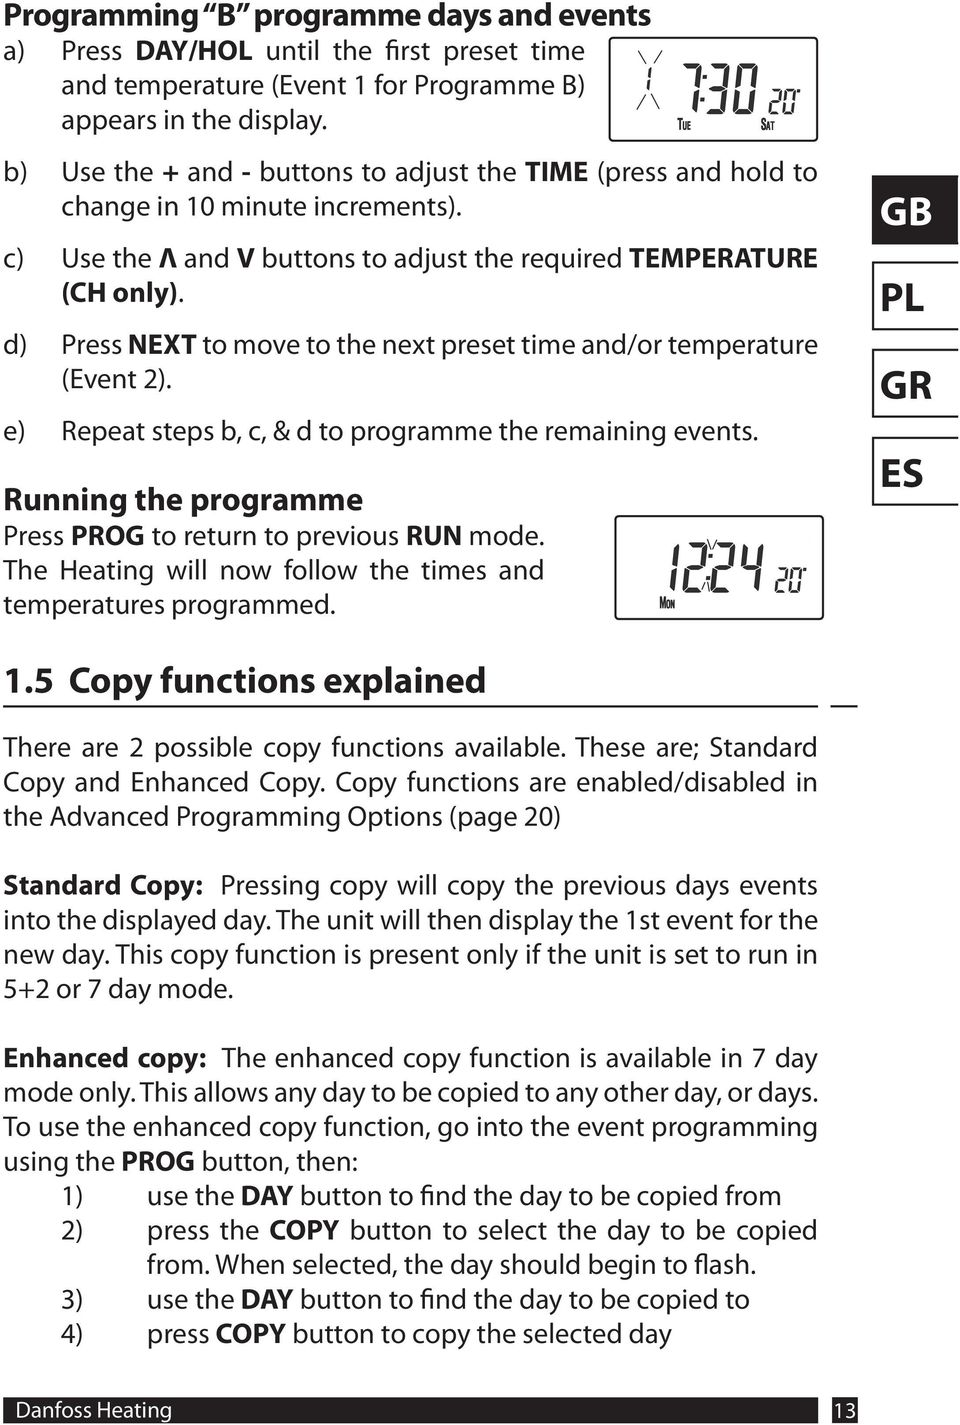 d) Press NEXT to move to the next preset time and/or temperature (Event 2). e) Repeat steps b, c, & d to programme the remaining events.